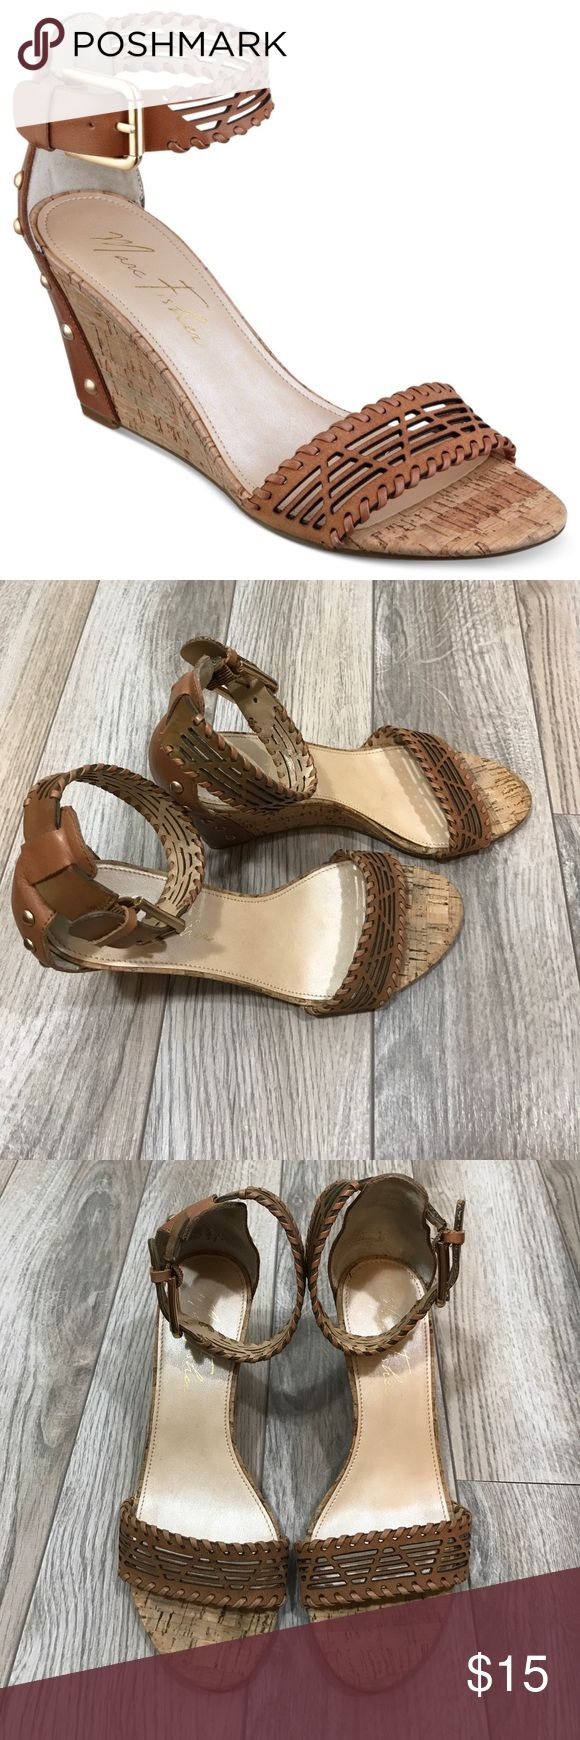 Marc Fisher Brown Caelin Cork Wedge Stud Sandal Great used condition Marc Fisher Caelin sandals size 7. They are in need of some Glue as evidenced in last photo. Slightly discolored at ankle strap but hardly noteiceable when worn (evidenced in second to last photo). Beautiful sandals for a night out or dress them down with jeans! Marc Fisher Shoes Wedges